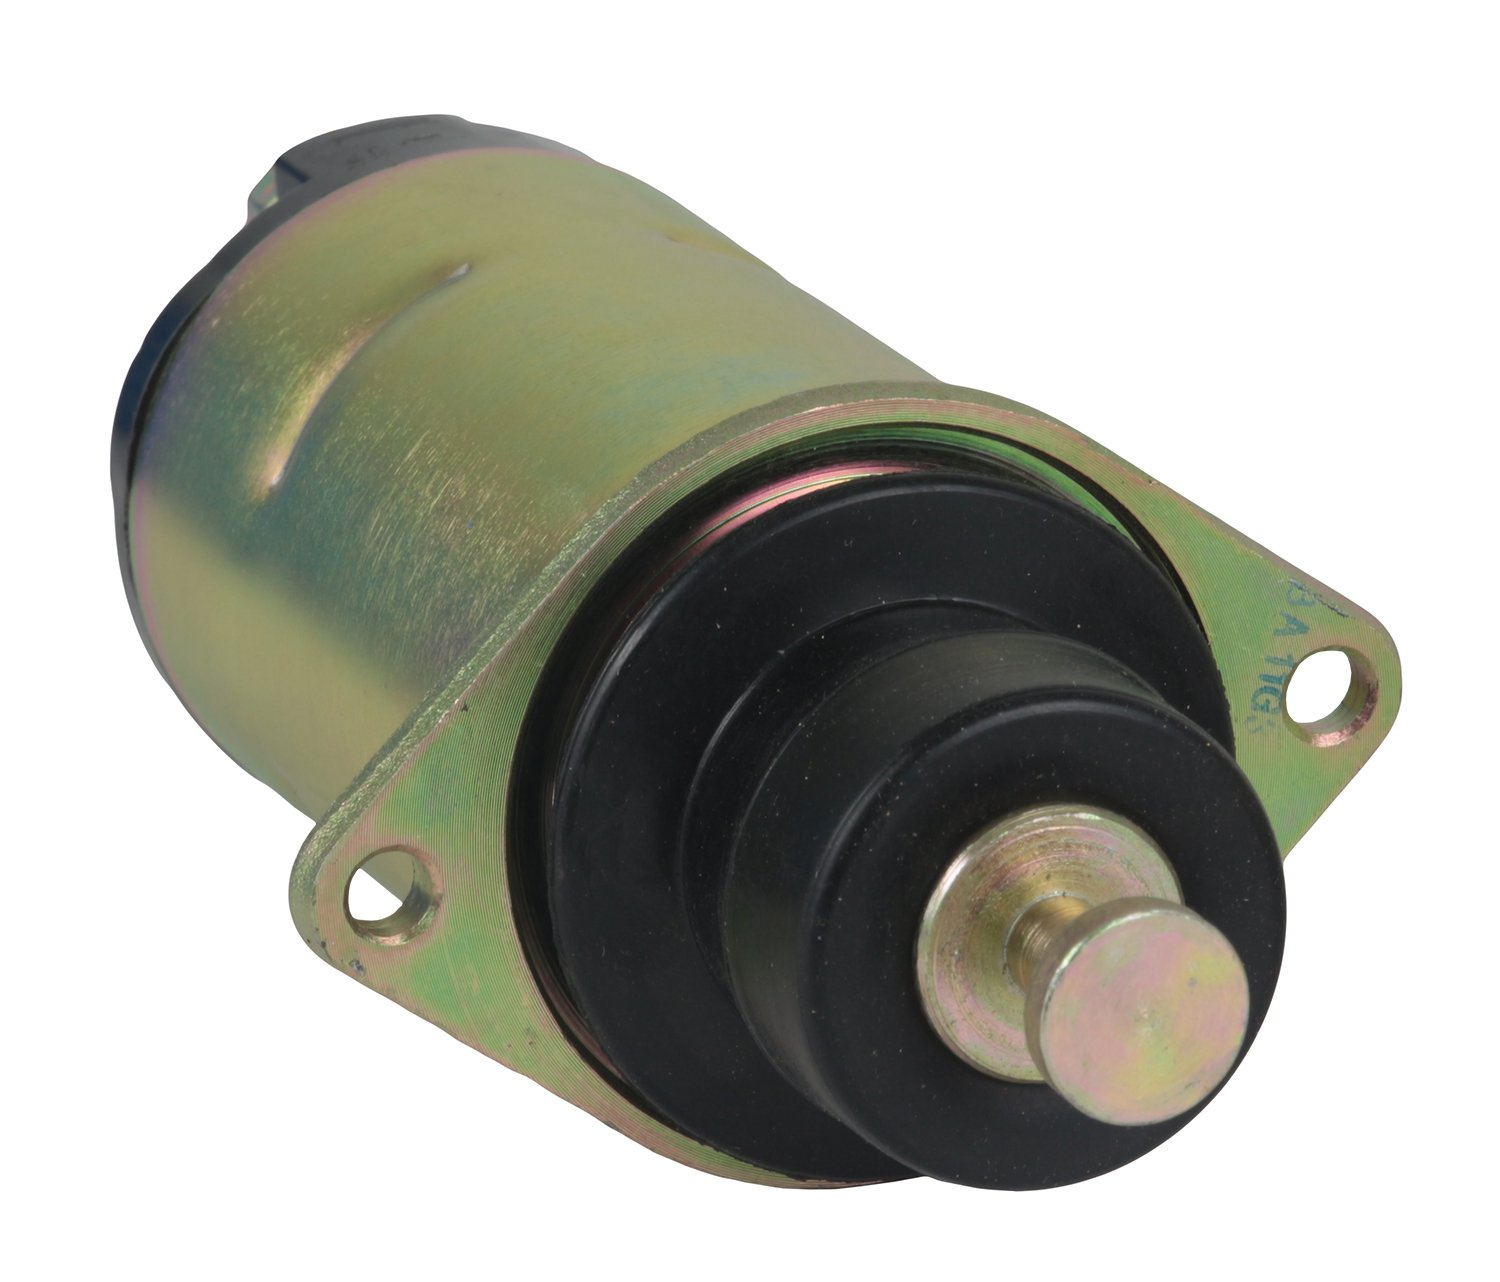 New Solenoid Fits John Deere Backhoe 210c 300d 310b 310c 310d Electrical Problems Please Help 315c 315d Re60654 Automotive